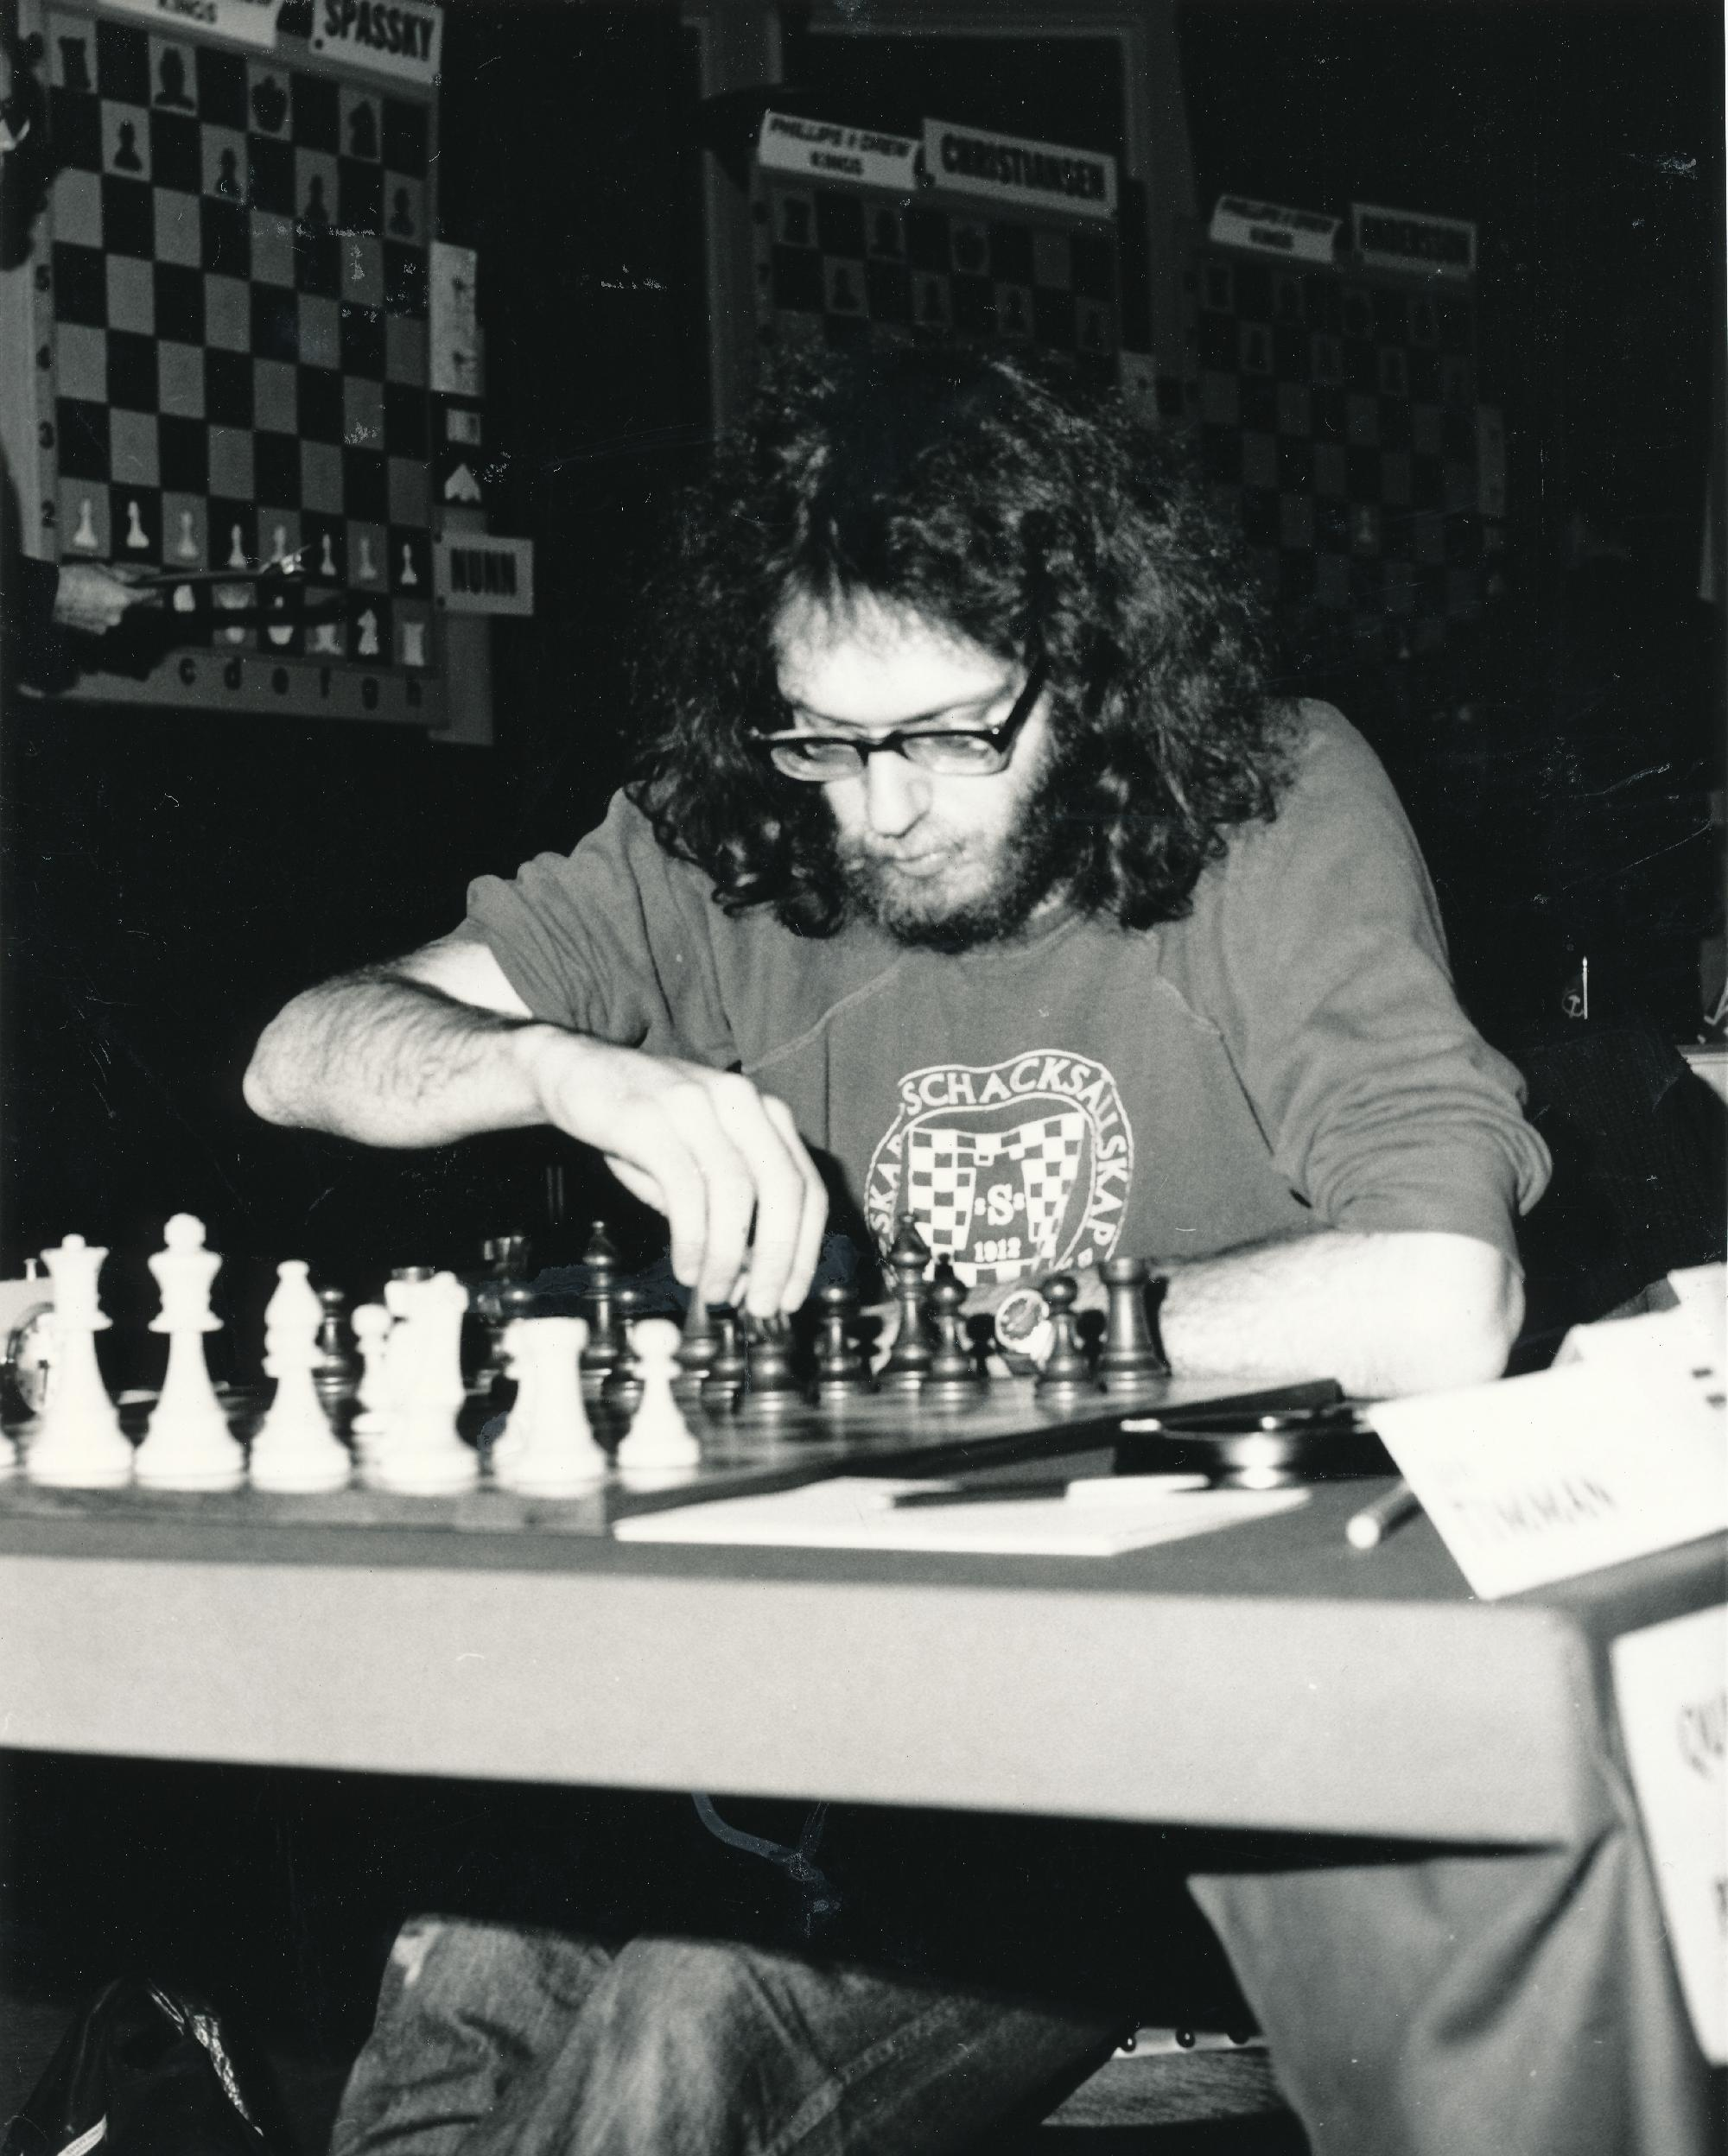 JS at the London based Philips & Drew Kings tournament